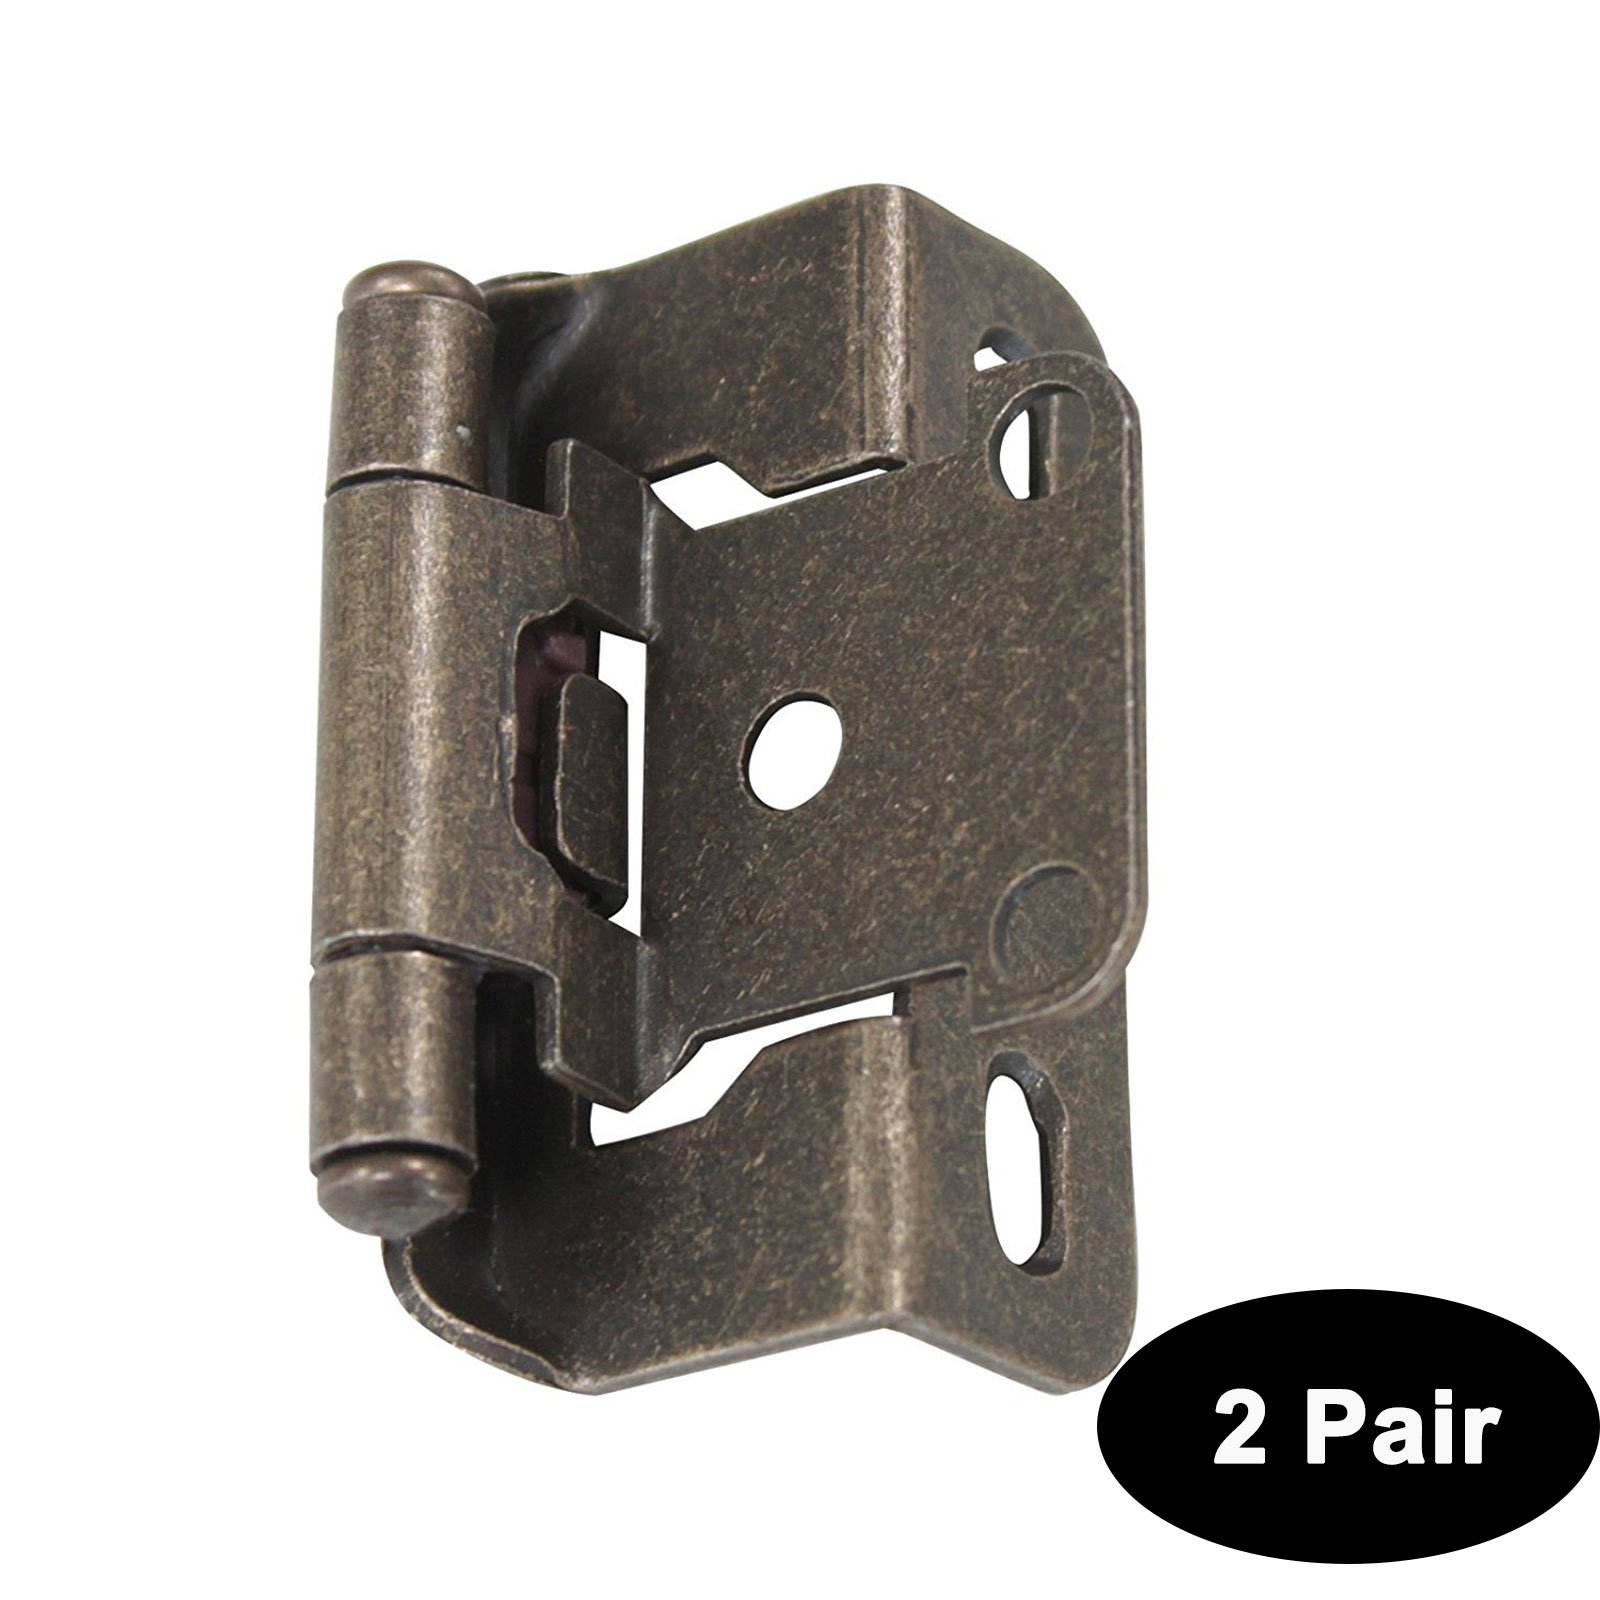 2 Pair (4 Pack) Probrico Cabinet Hinges Antique Bronze Self Close Variable Overlay 1/2 inch Overlay Face Mount Kitchen Cabinet Hinges Furniture Door Hardware